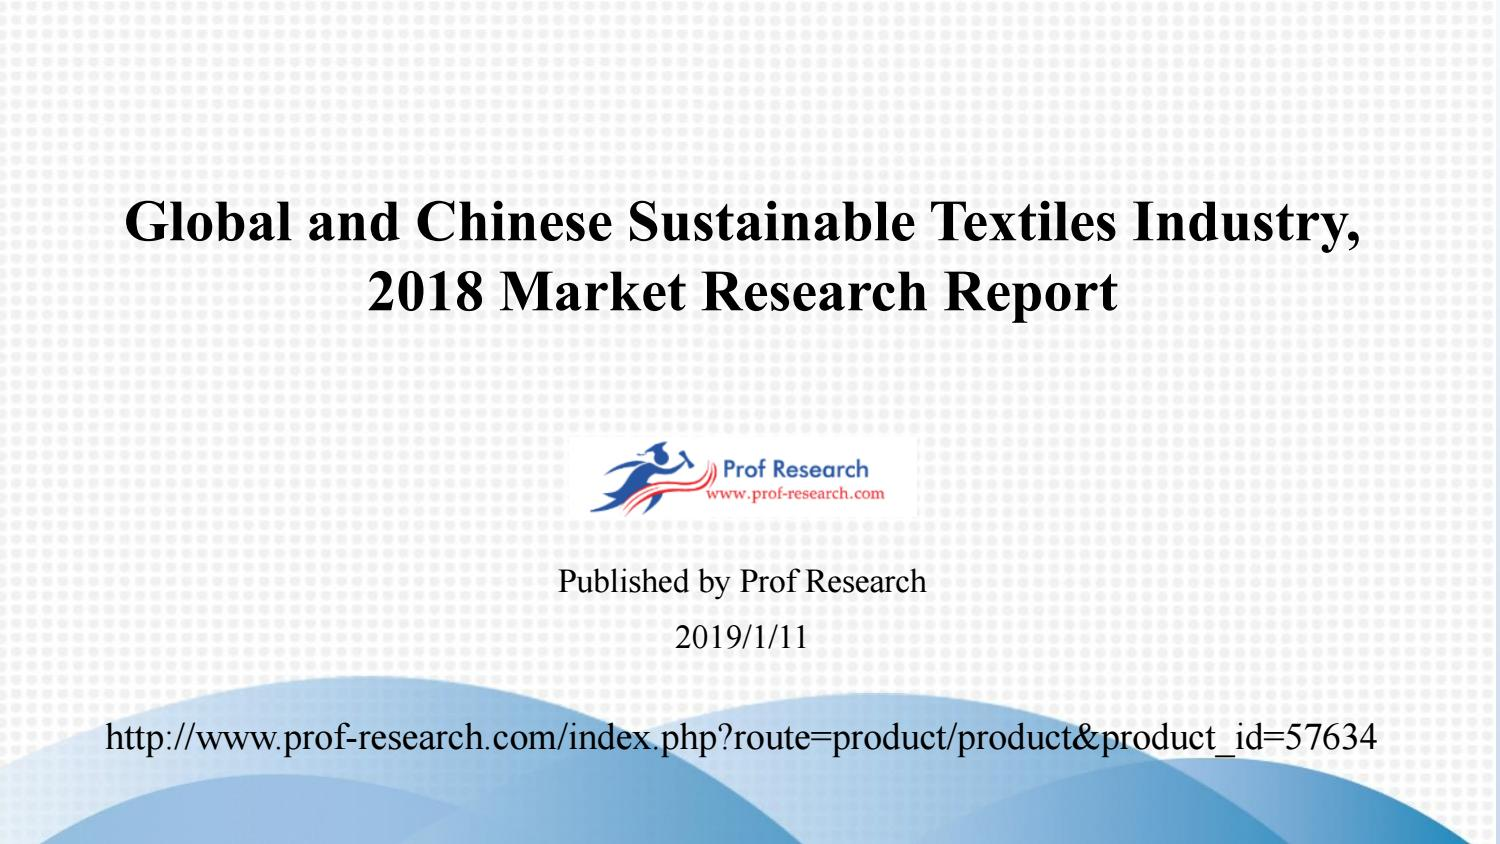 Global and Chinese Sustainable Textiles Industry, 2018